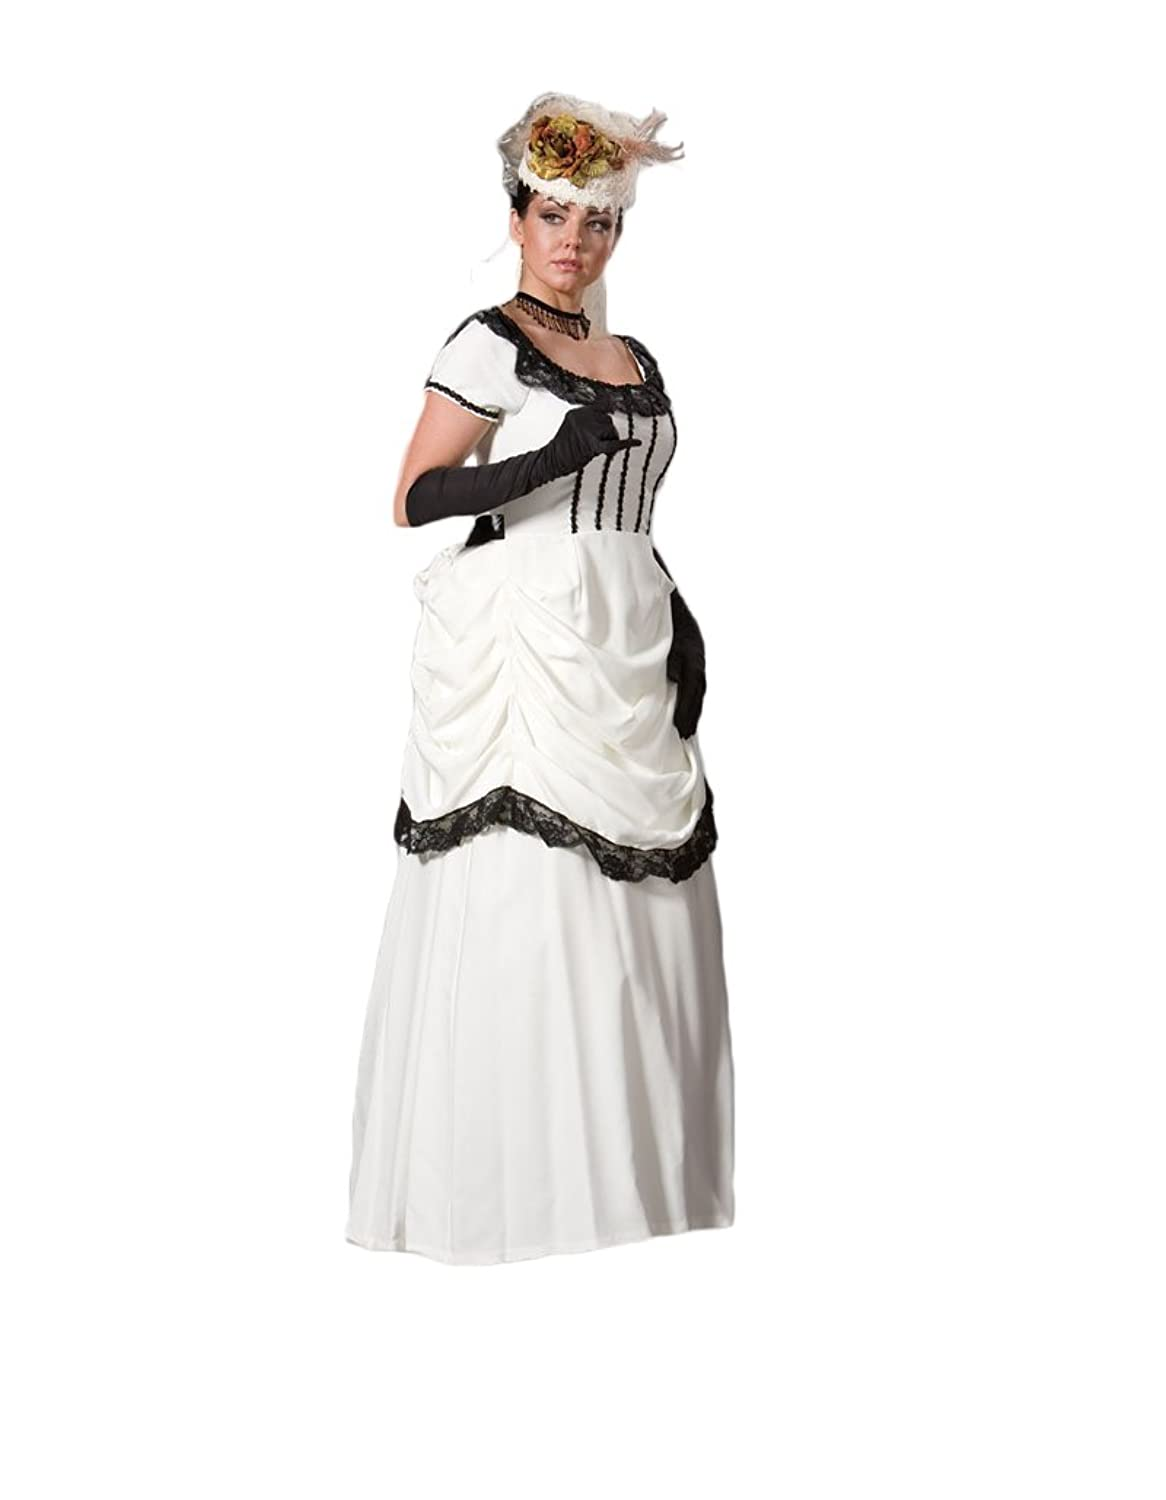 Vintage Style Wedding Dresses, Vintage Inspired Wedding Gowns Womens White Victorian Emma Dress Theater Costume $239.99 AT vintagedancer.com